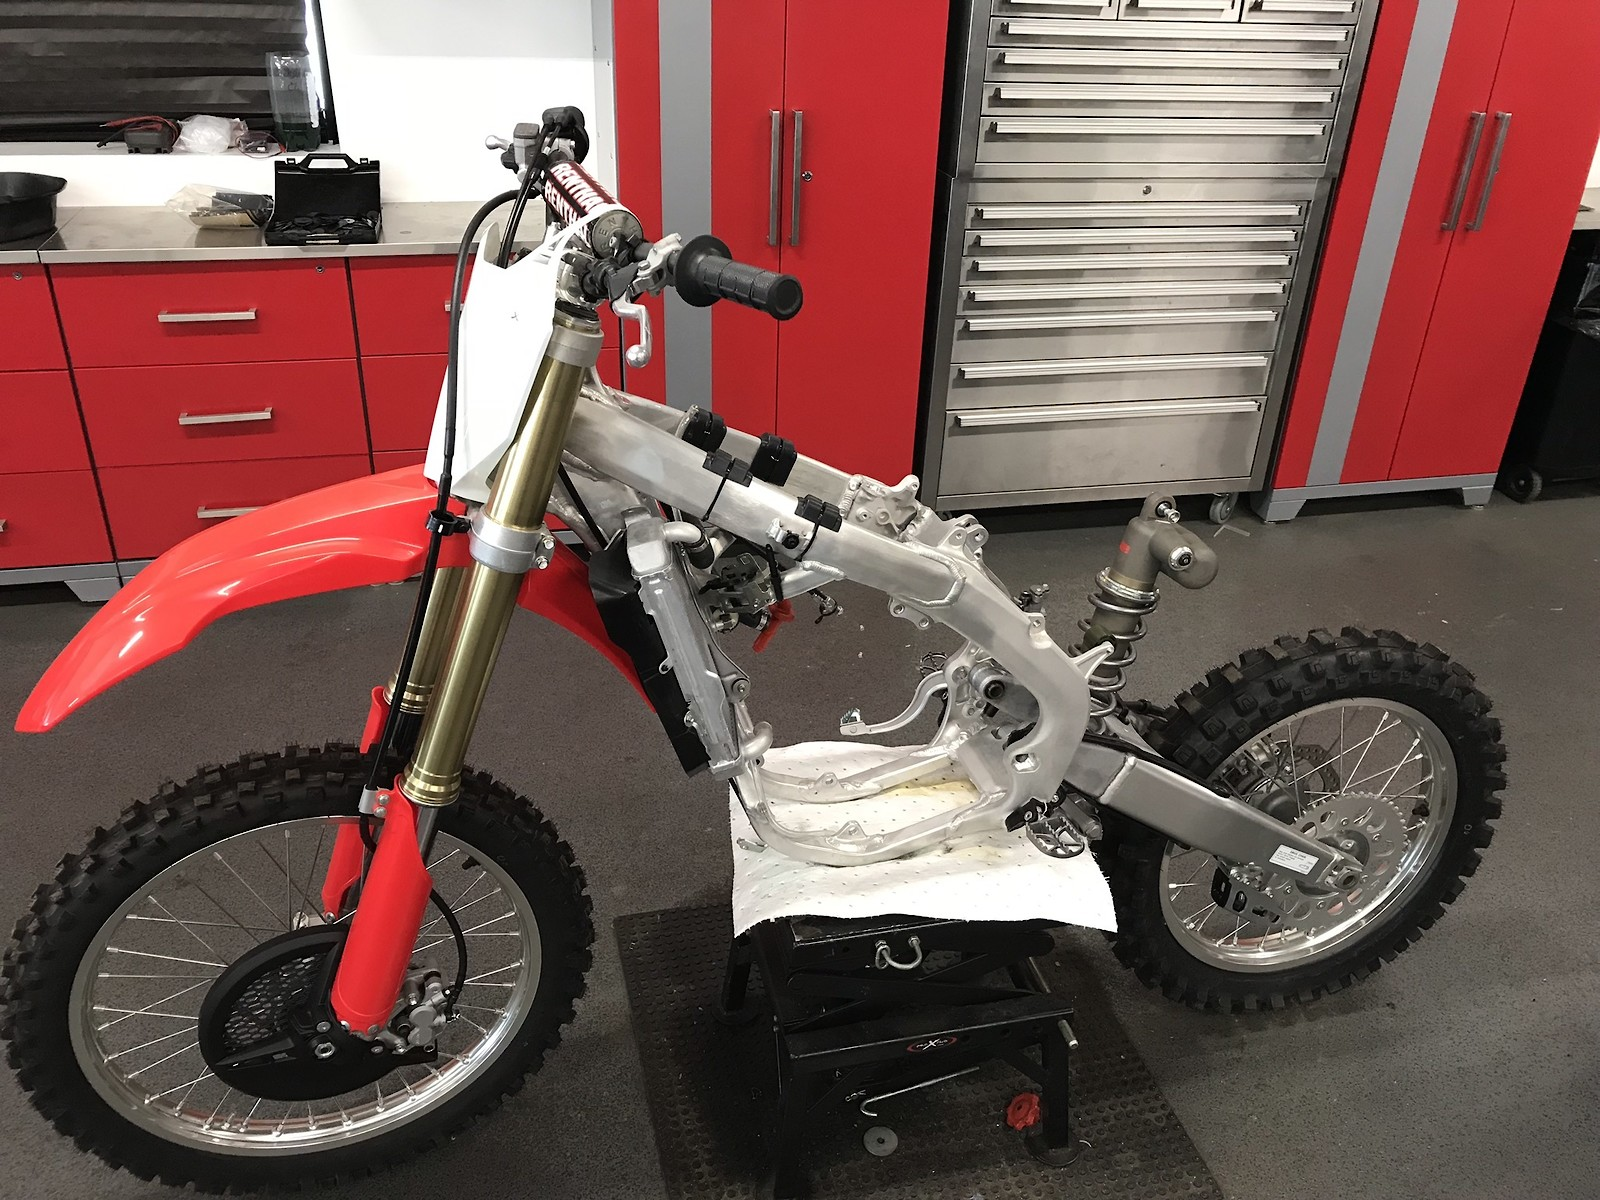 2017 Crf 450 Rolling Chassis Never Rode